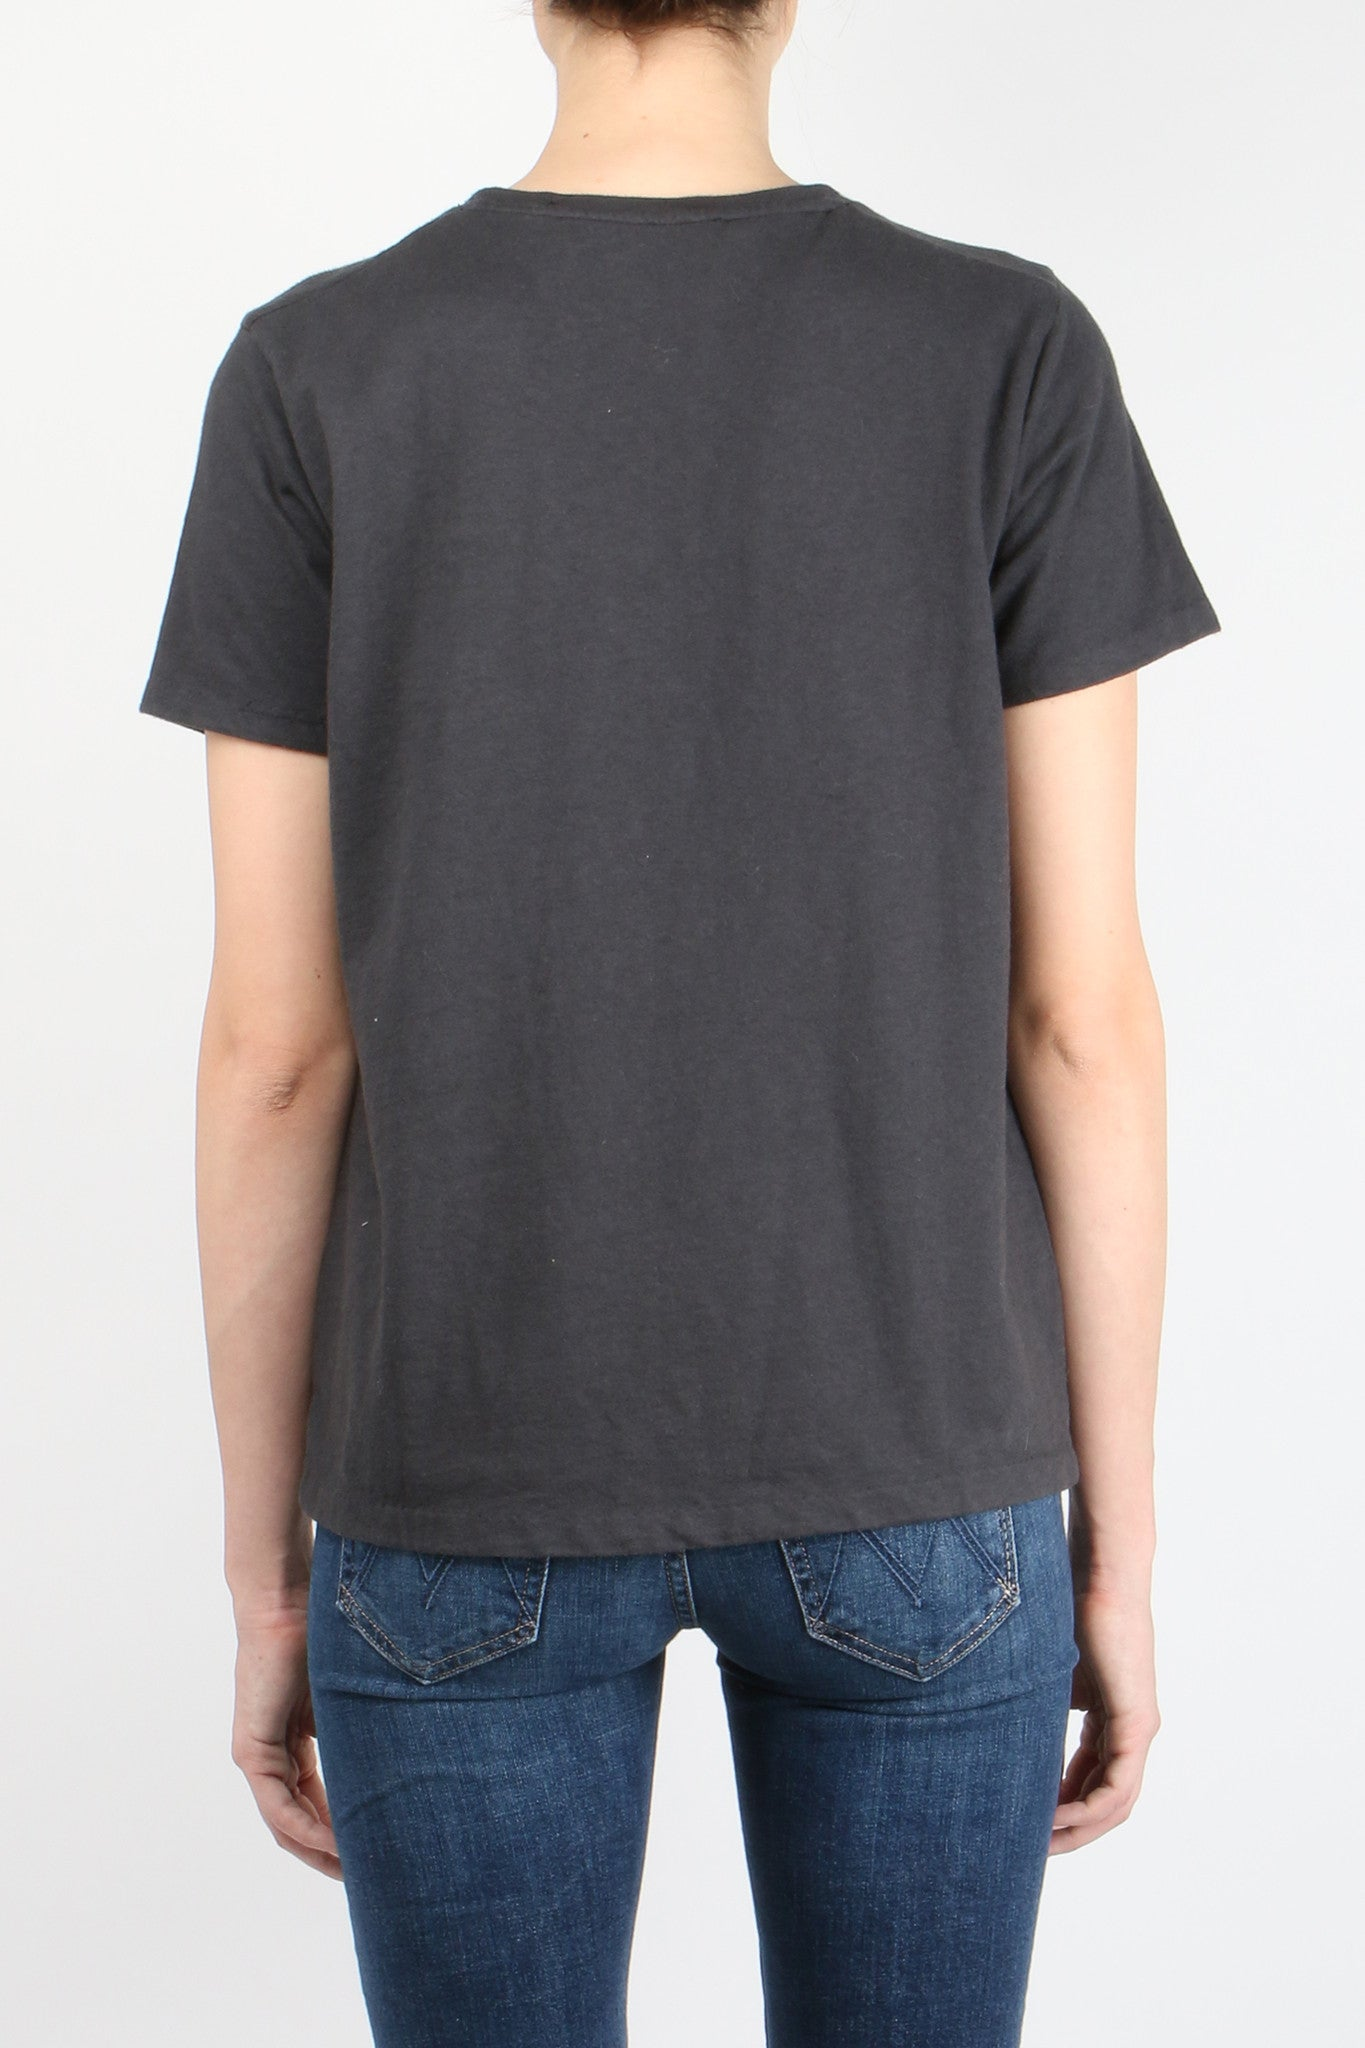 W ATE R Relaxed Short Sleeve Tee Gradefi